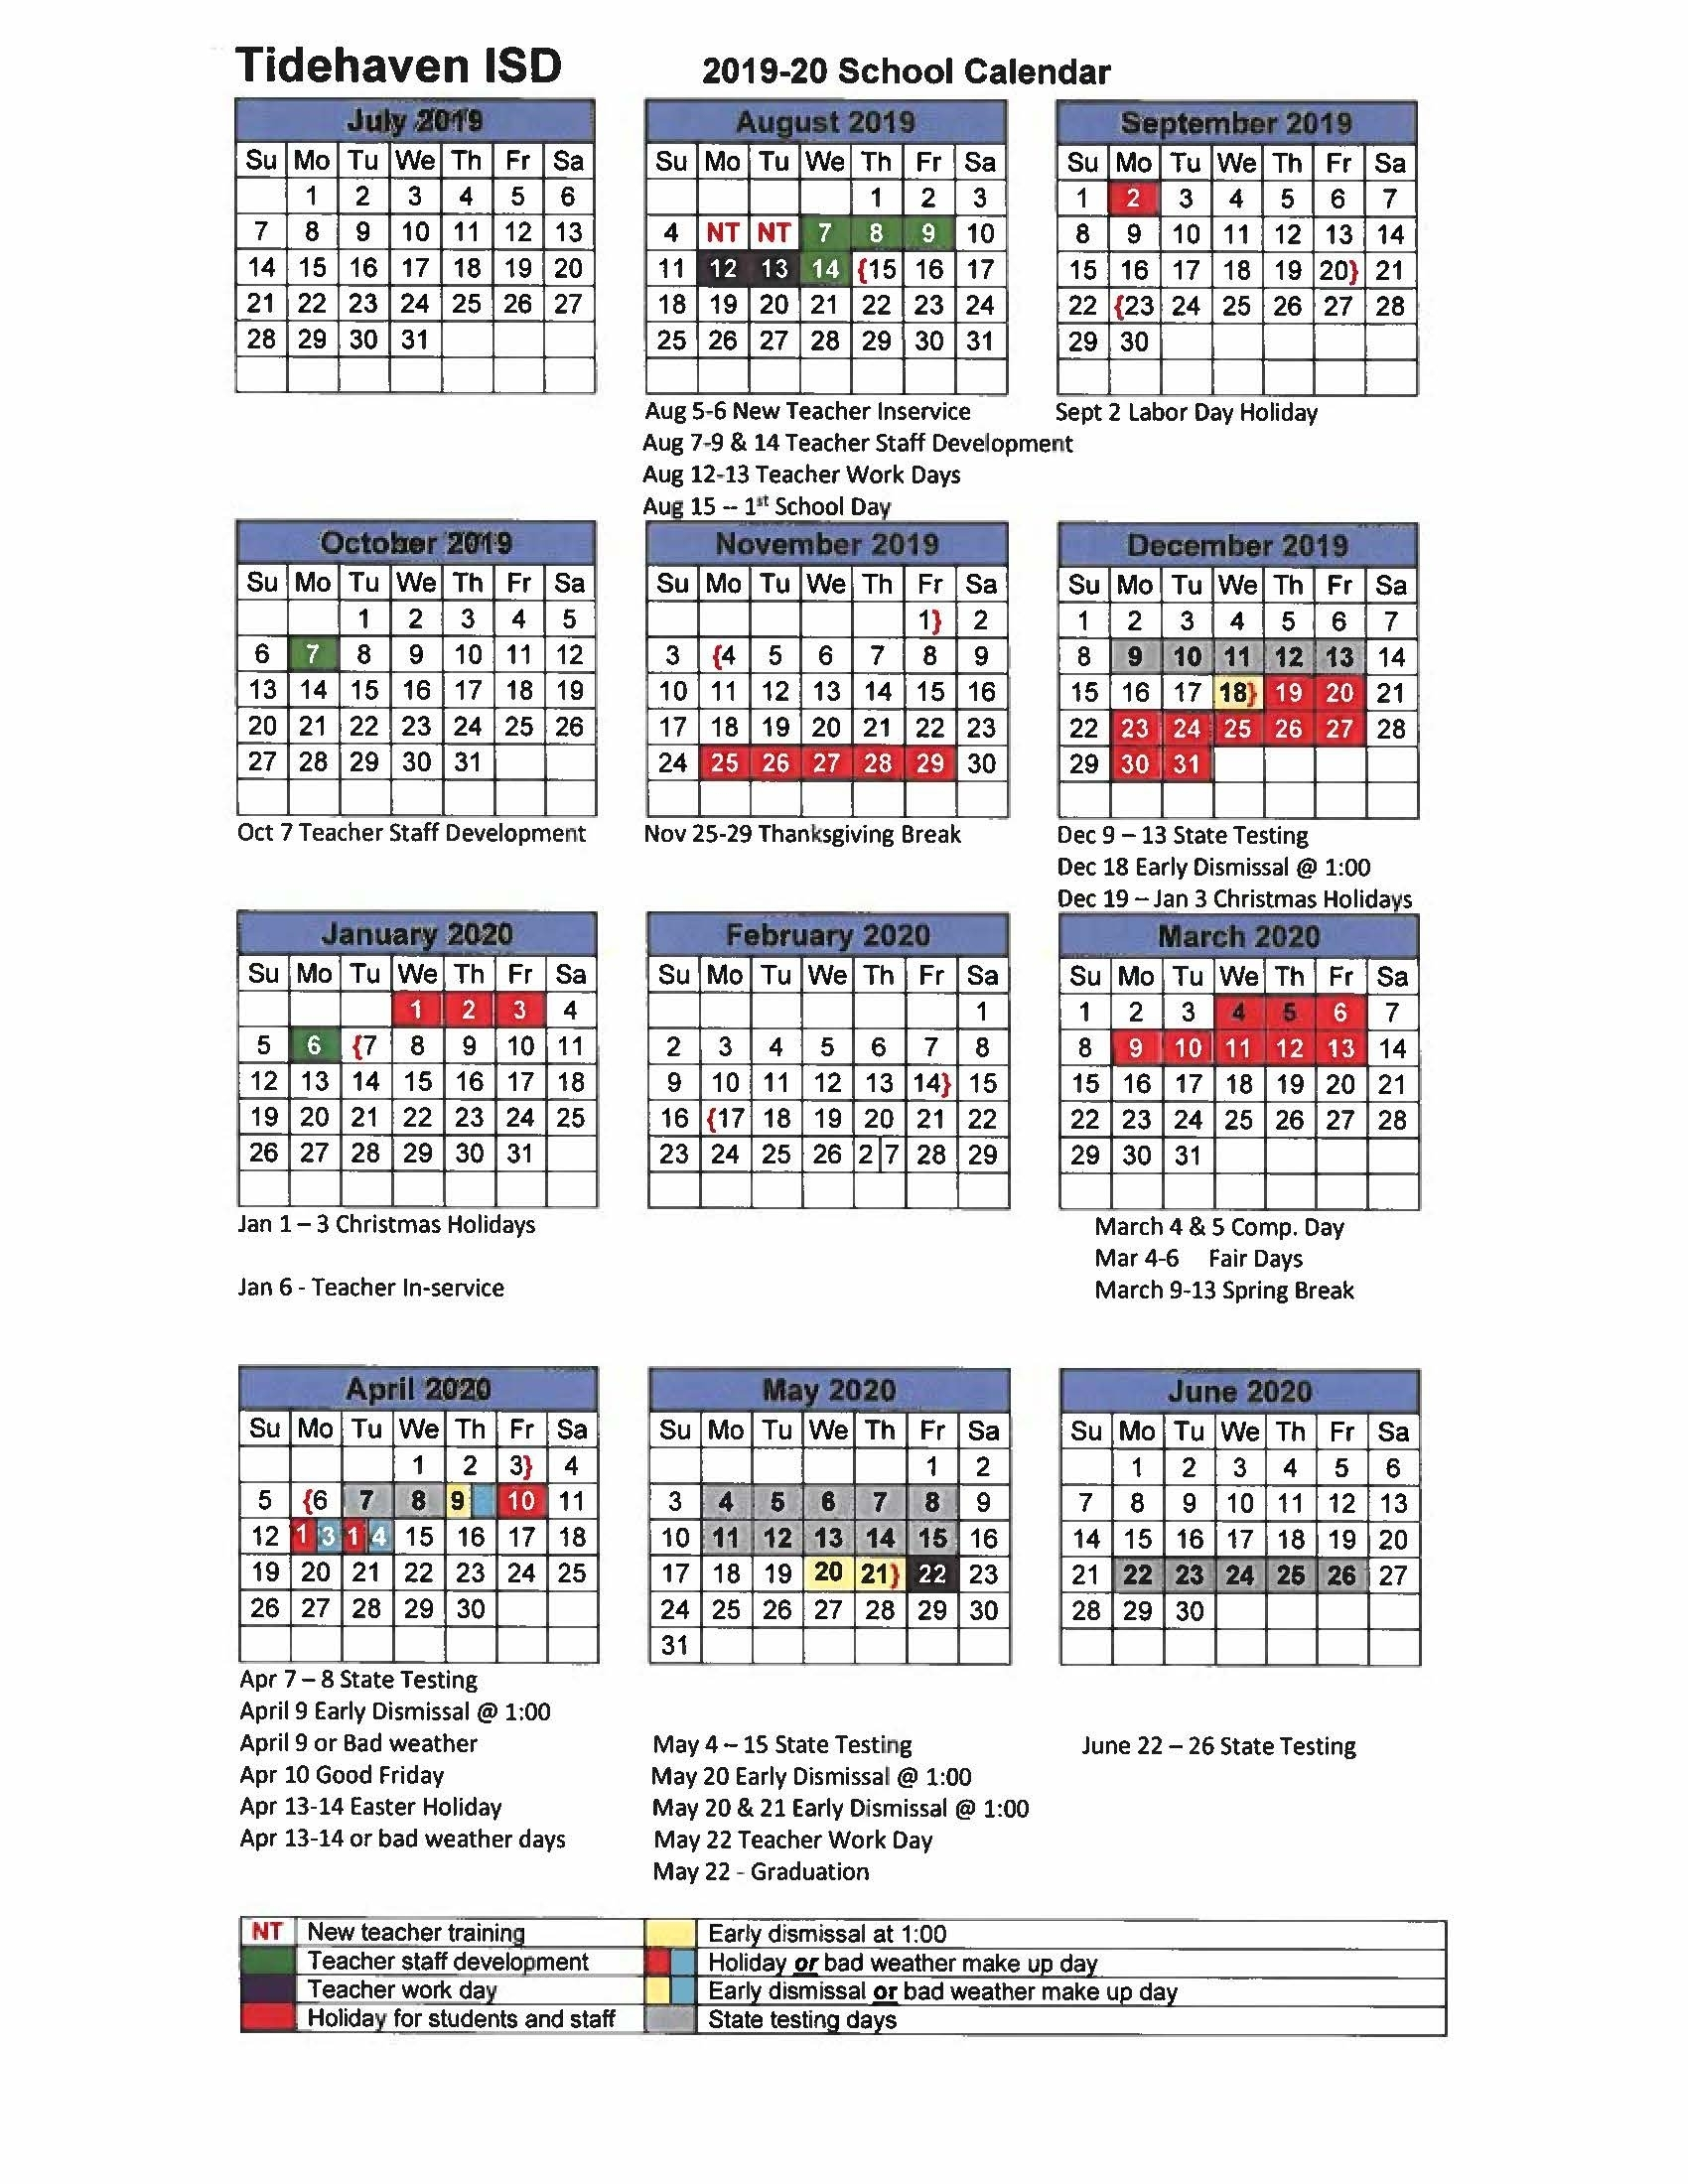 District Calendar - Tidehaven Isd